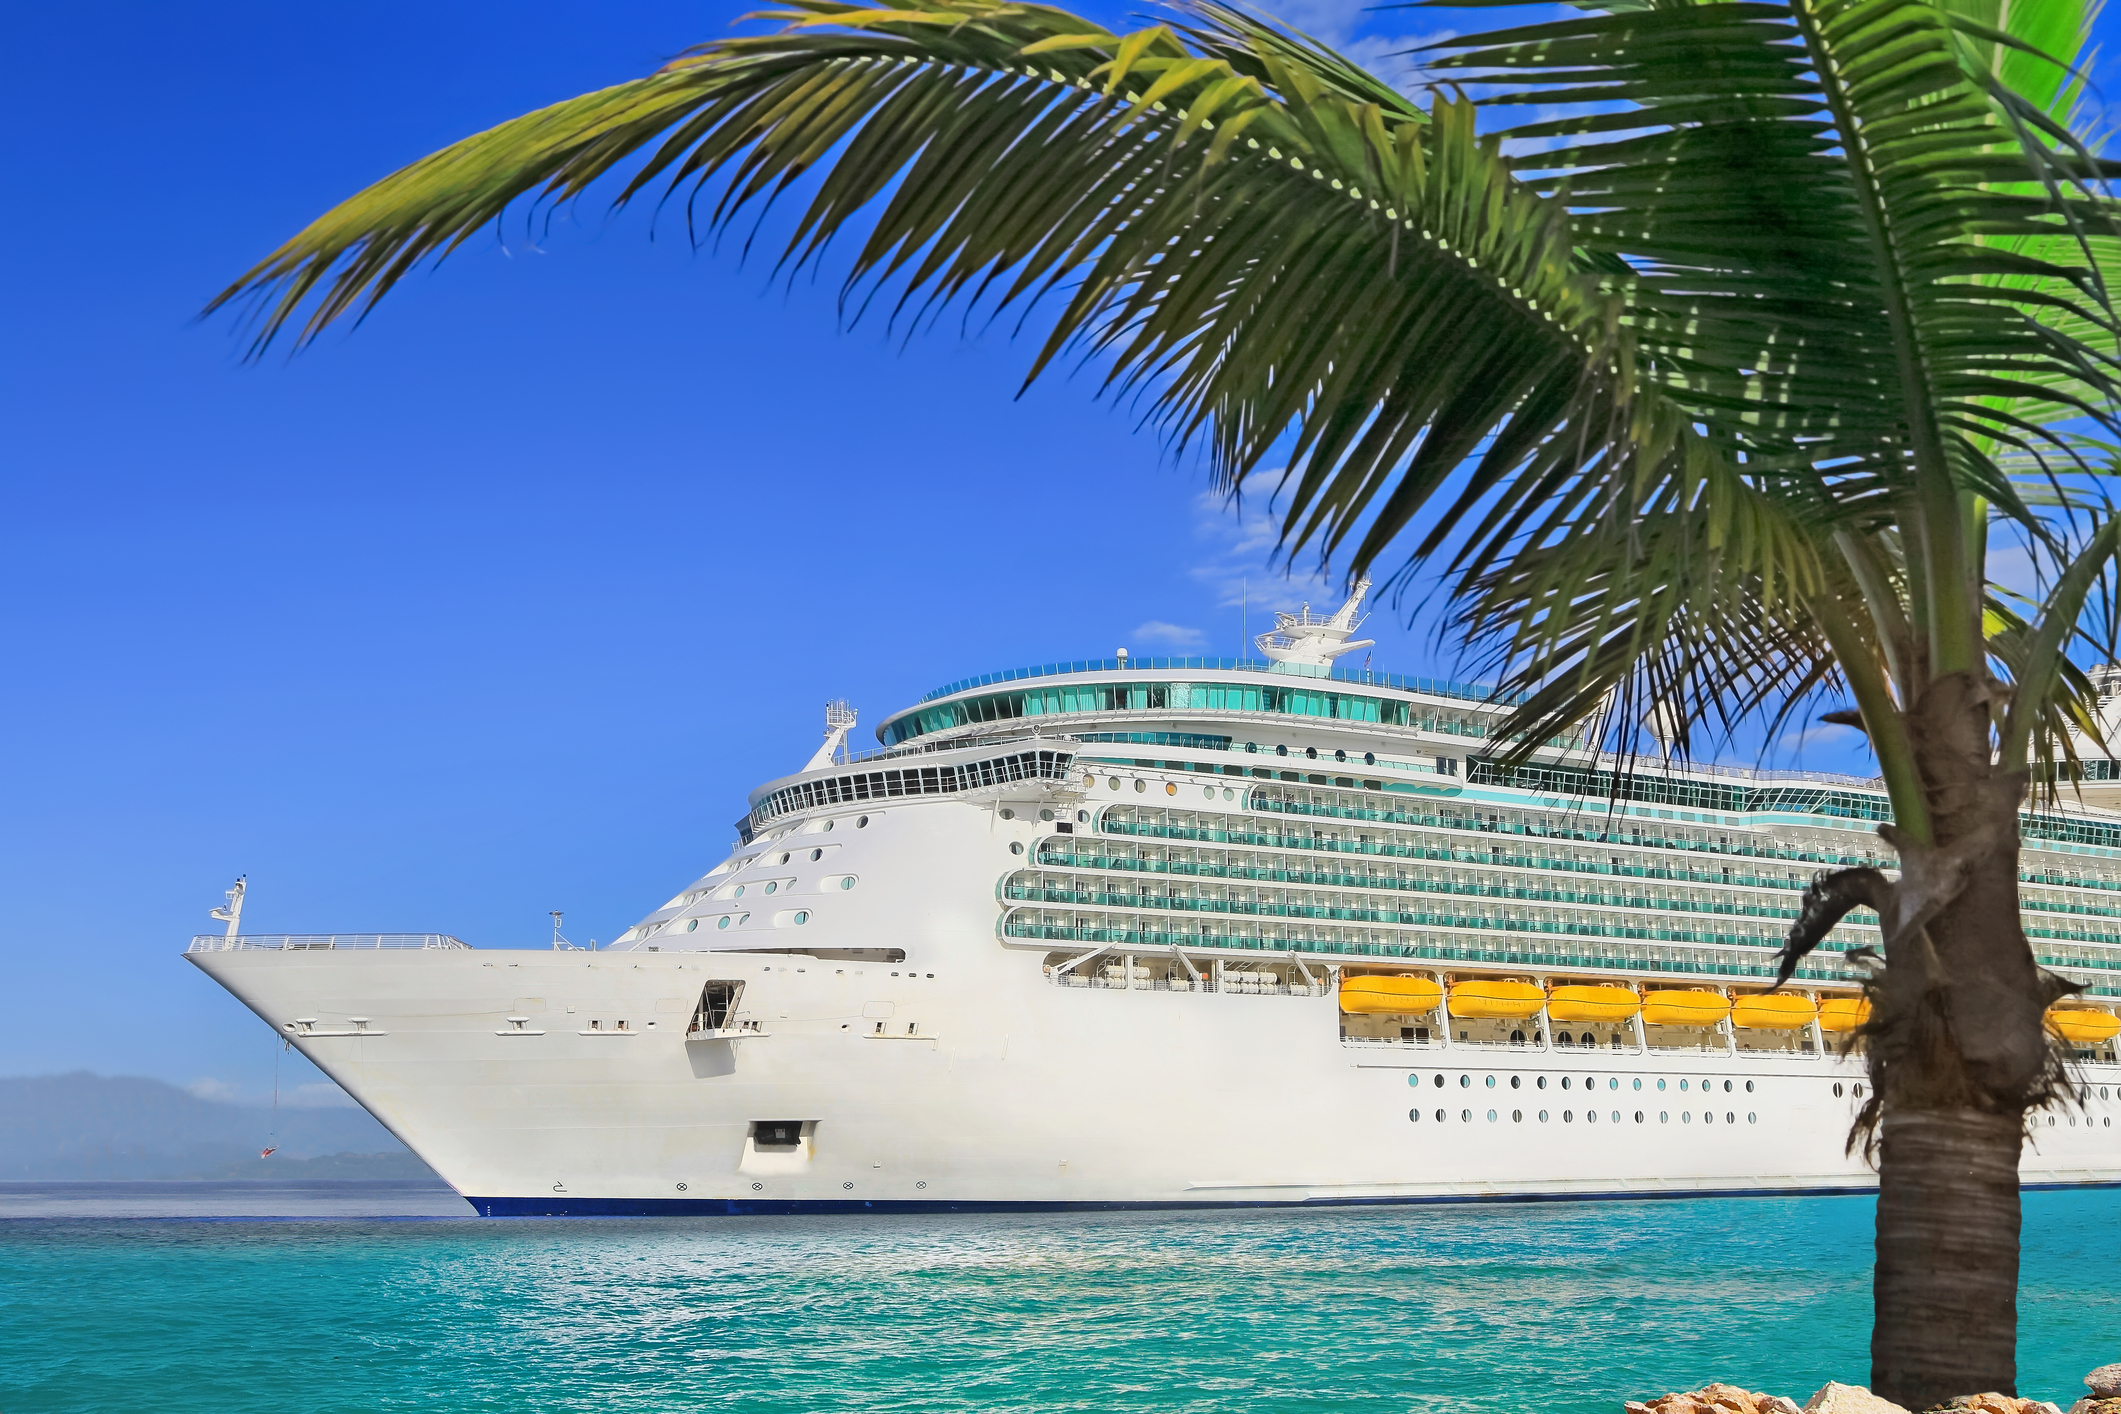 cruise-ship-palm-tree.jpg?mtime=20190320094615#asset:105218